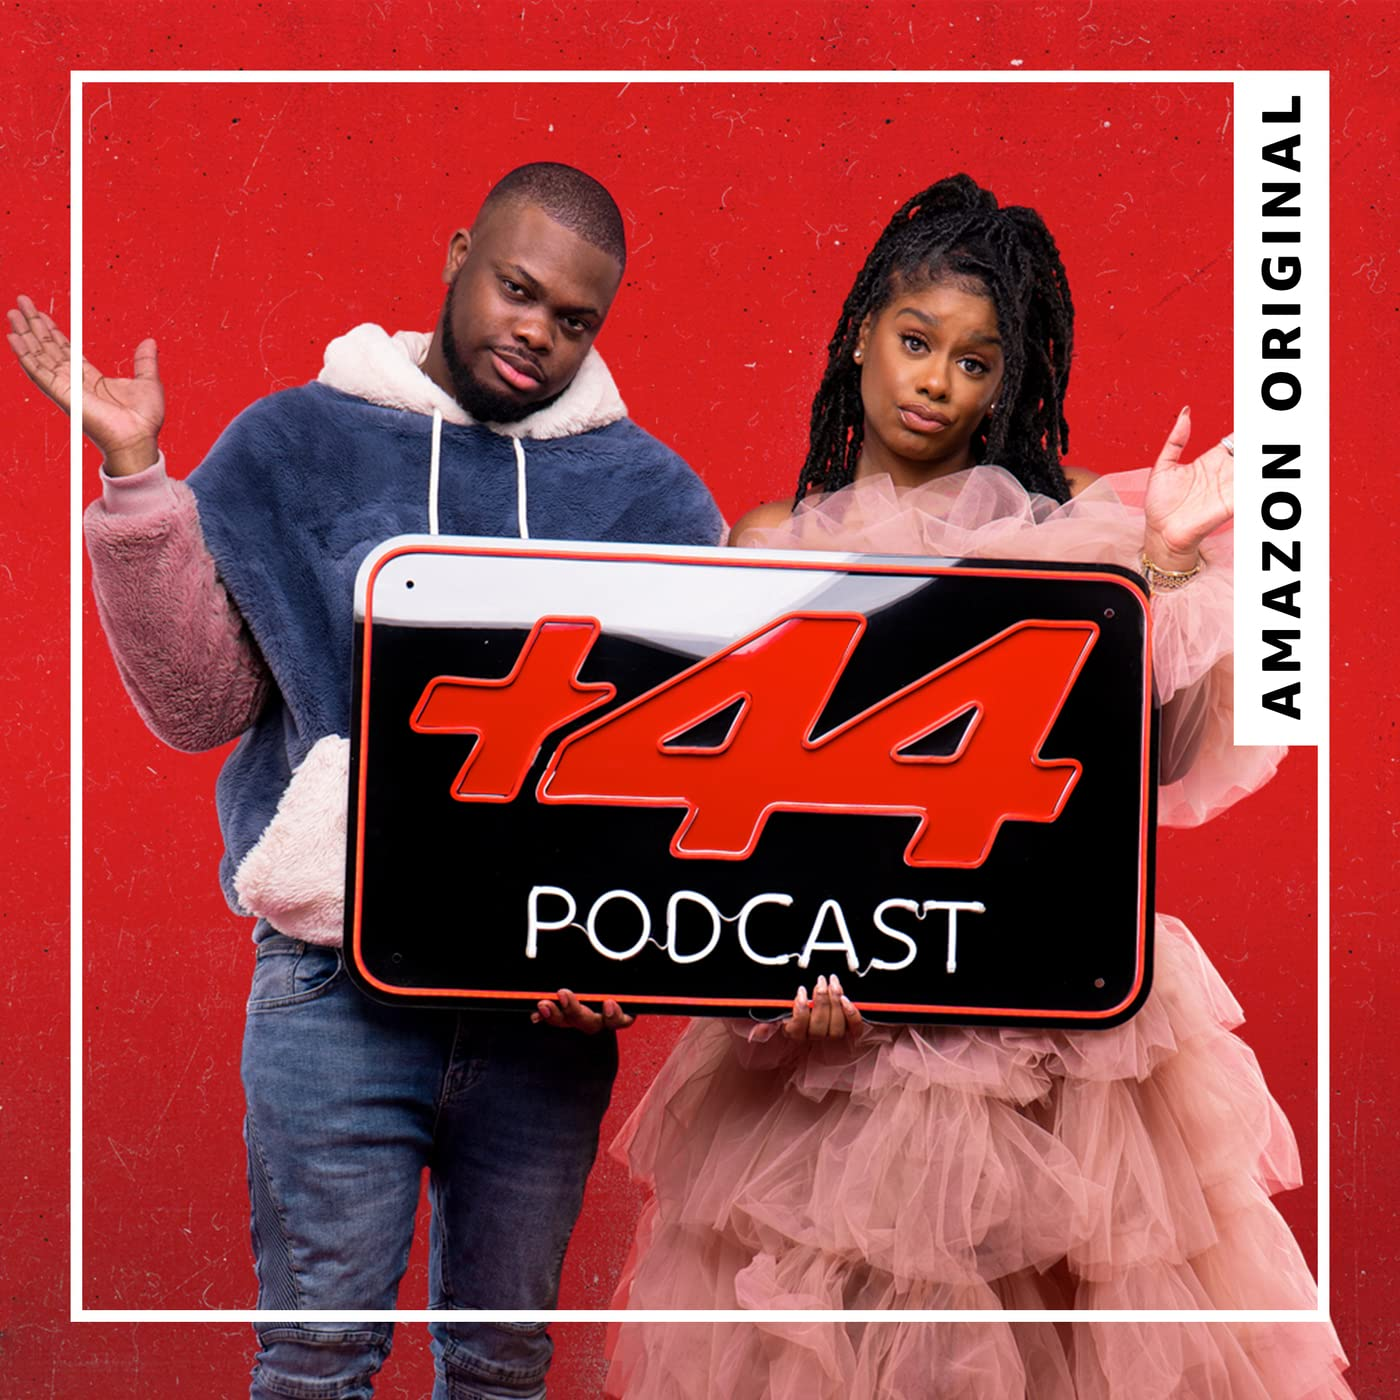 +44 Podcast with Zeze Millz and Sideman